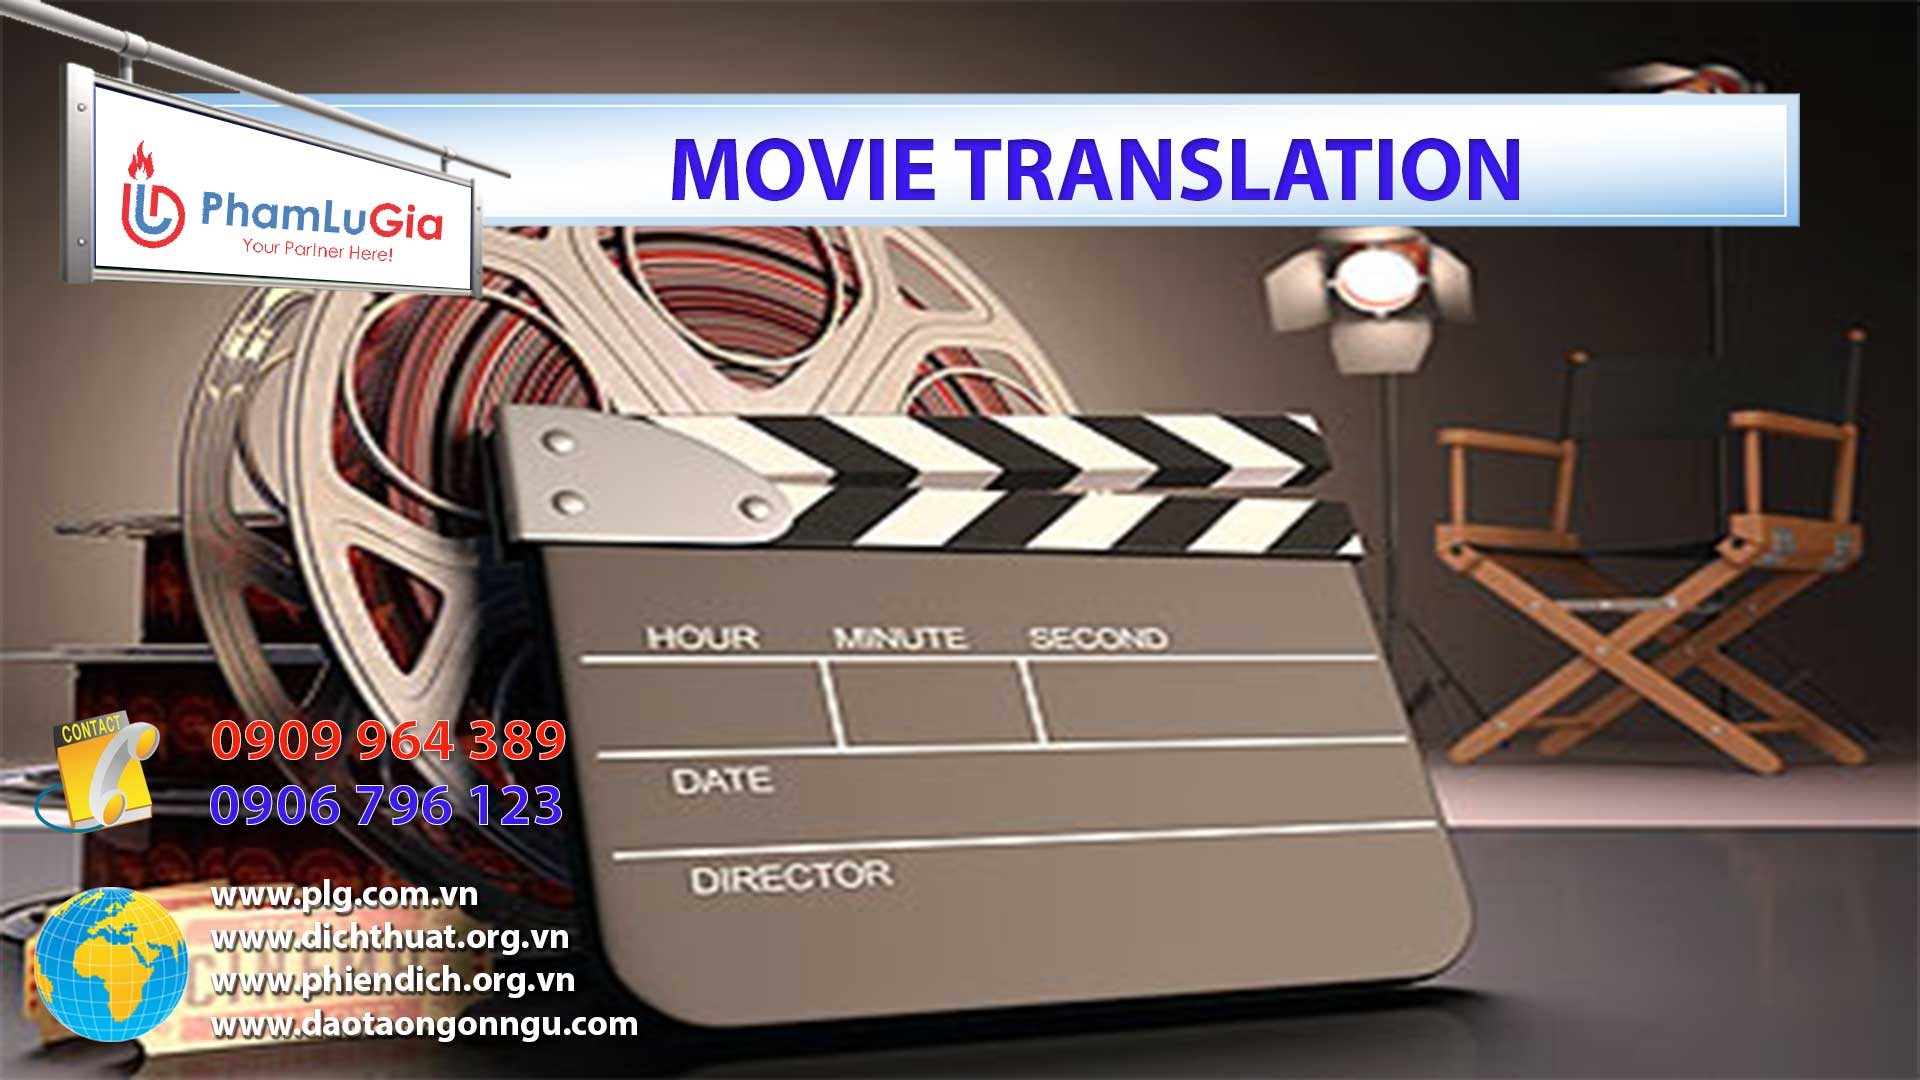 Movie Translation